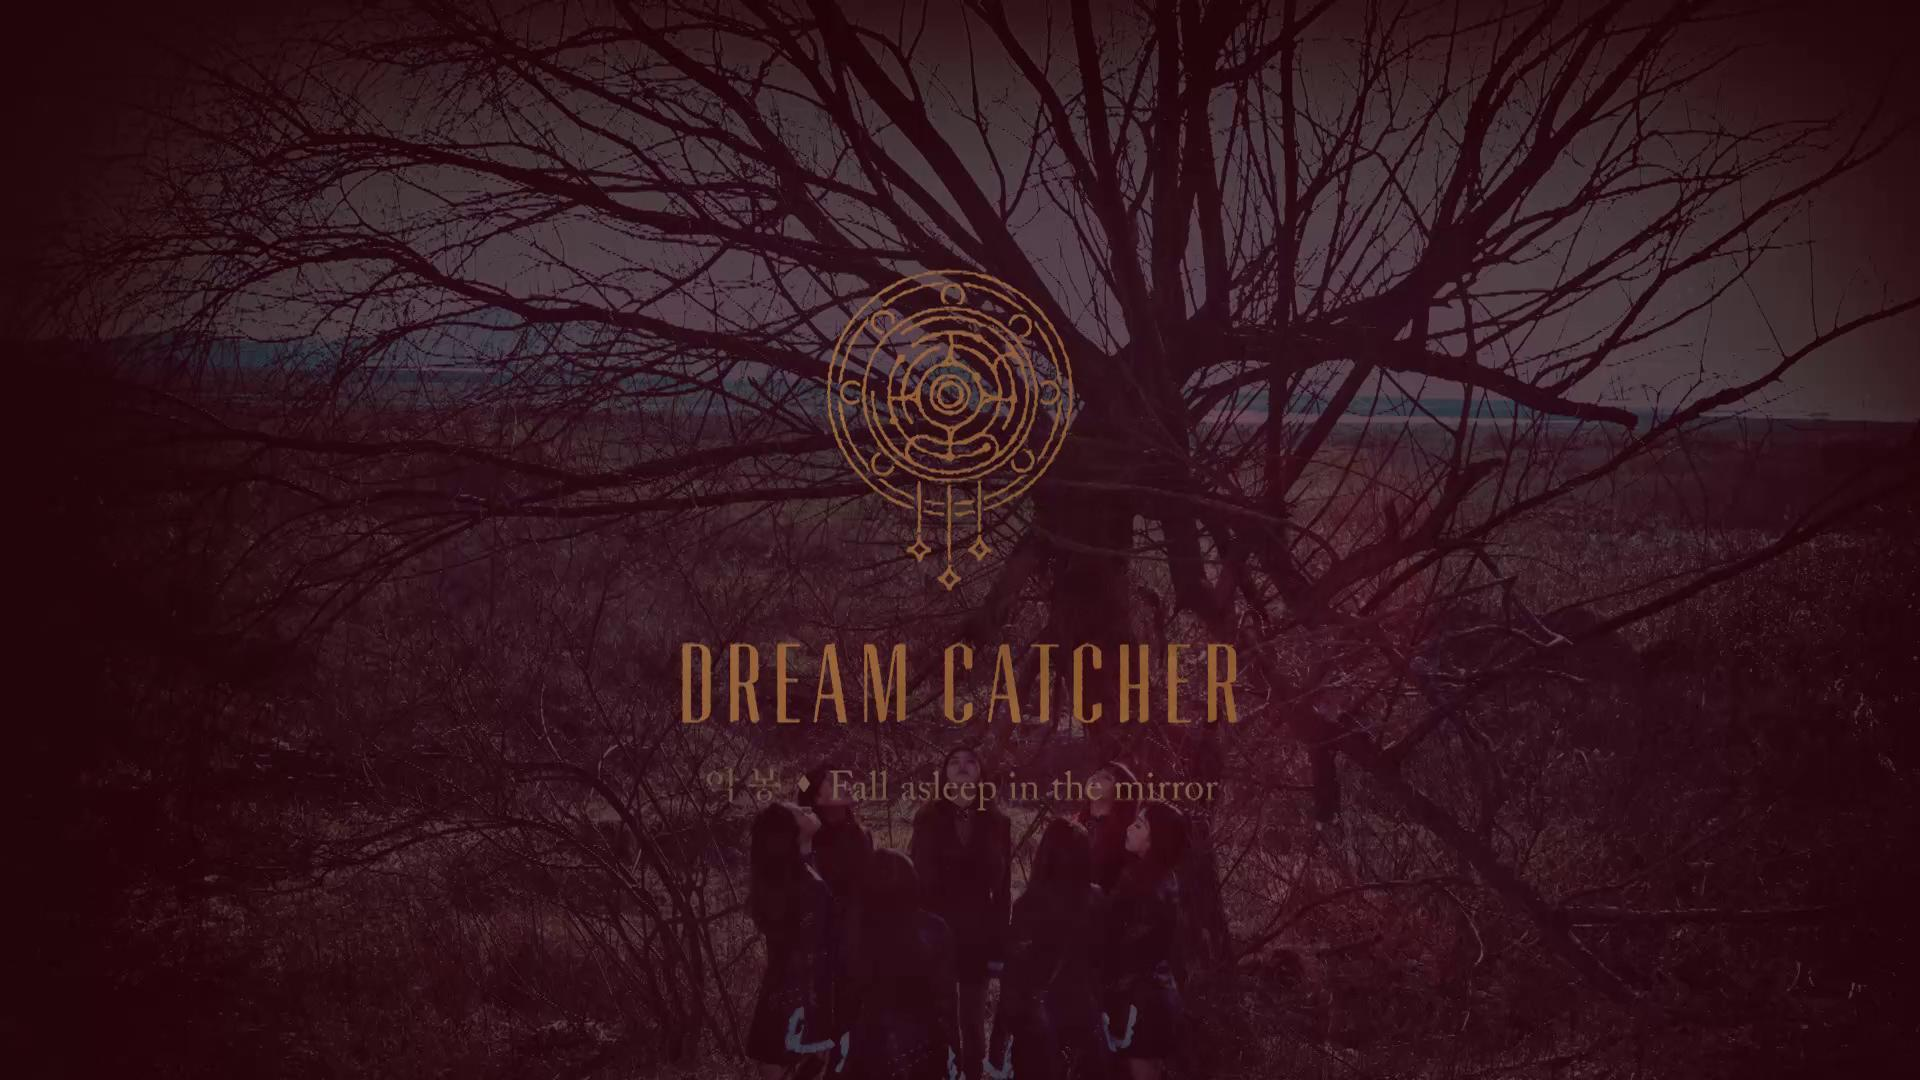 Android Fall Live Wallpaper V Live Dreamcatcher 드림캐쳐 Quot 악몽 Fall Asleep In The Mirror